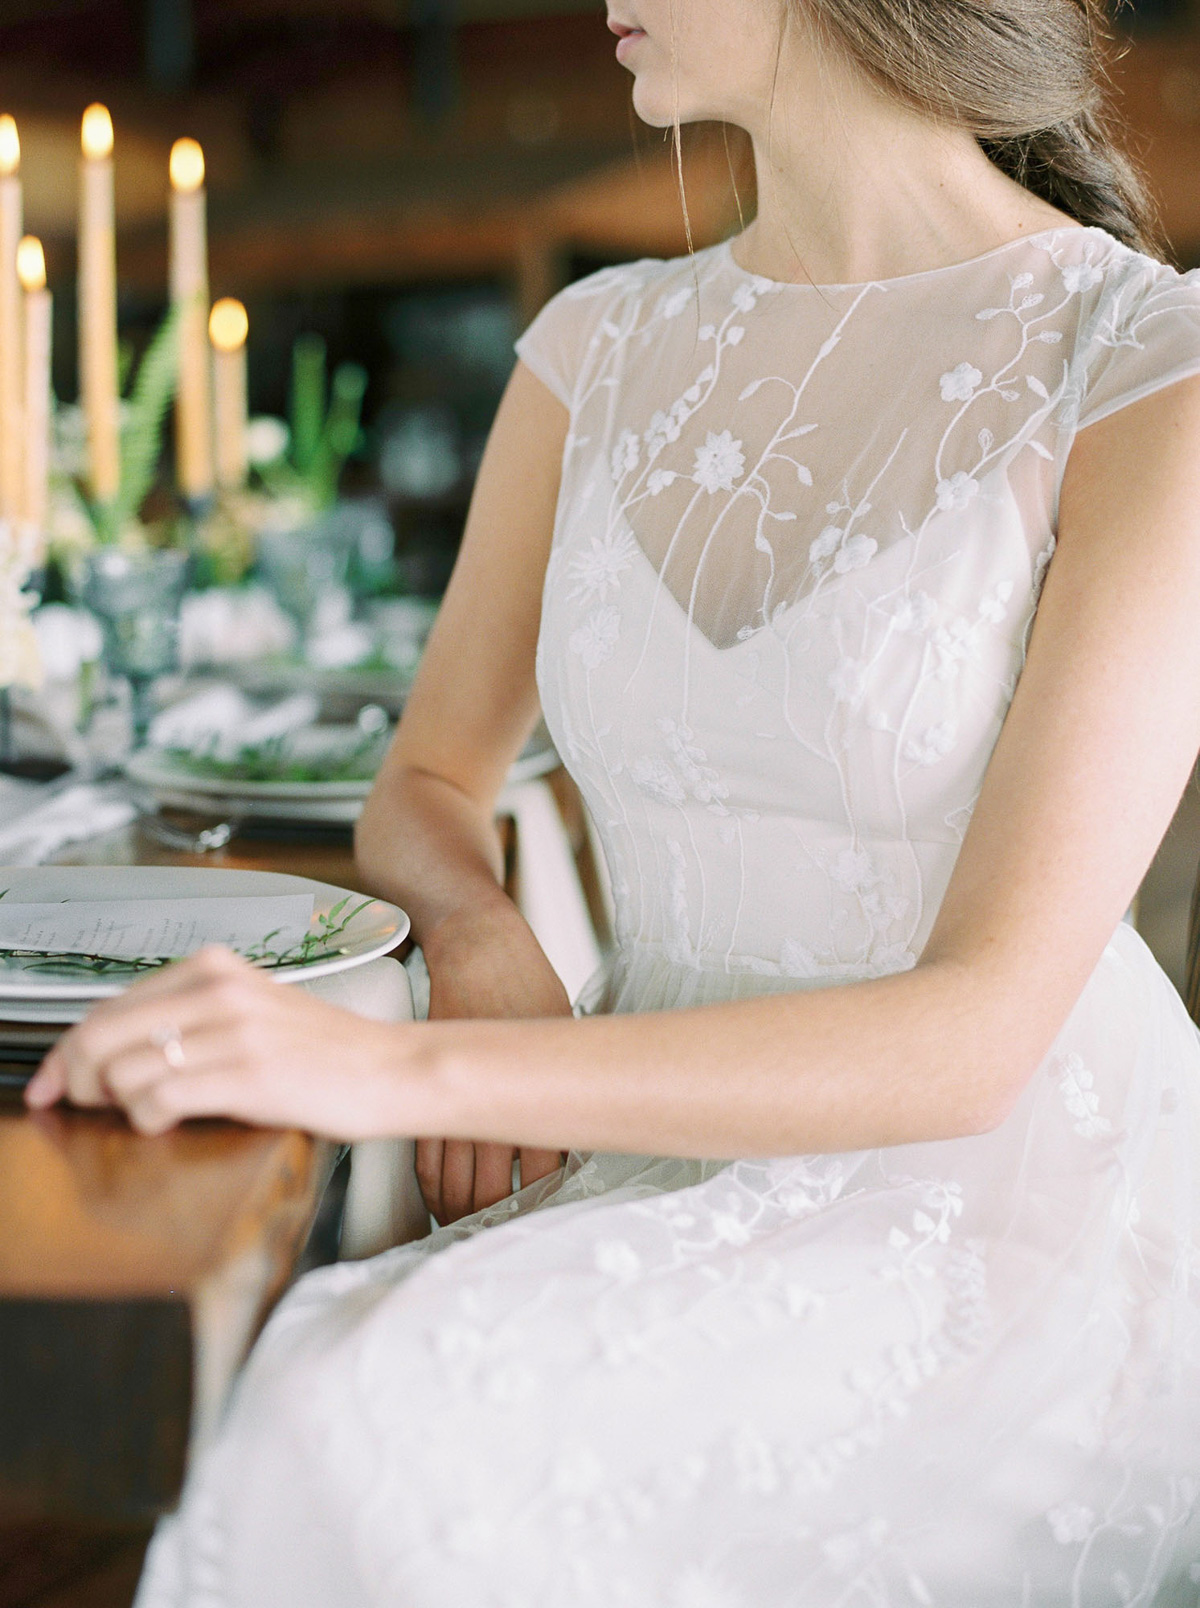 will-reid-photo-vineyard-bride-swish-list-kurtz-orchards-market-niagara-on-the-lake-wedding-editorial-15.jpg